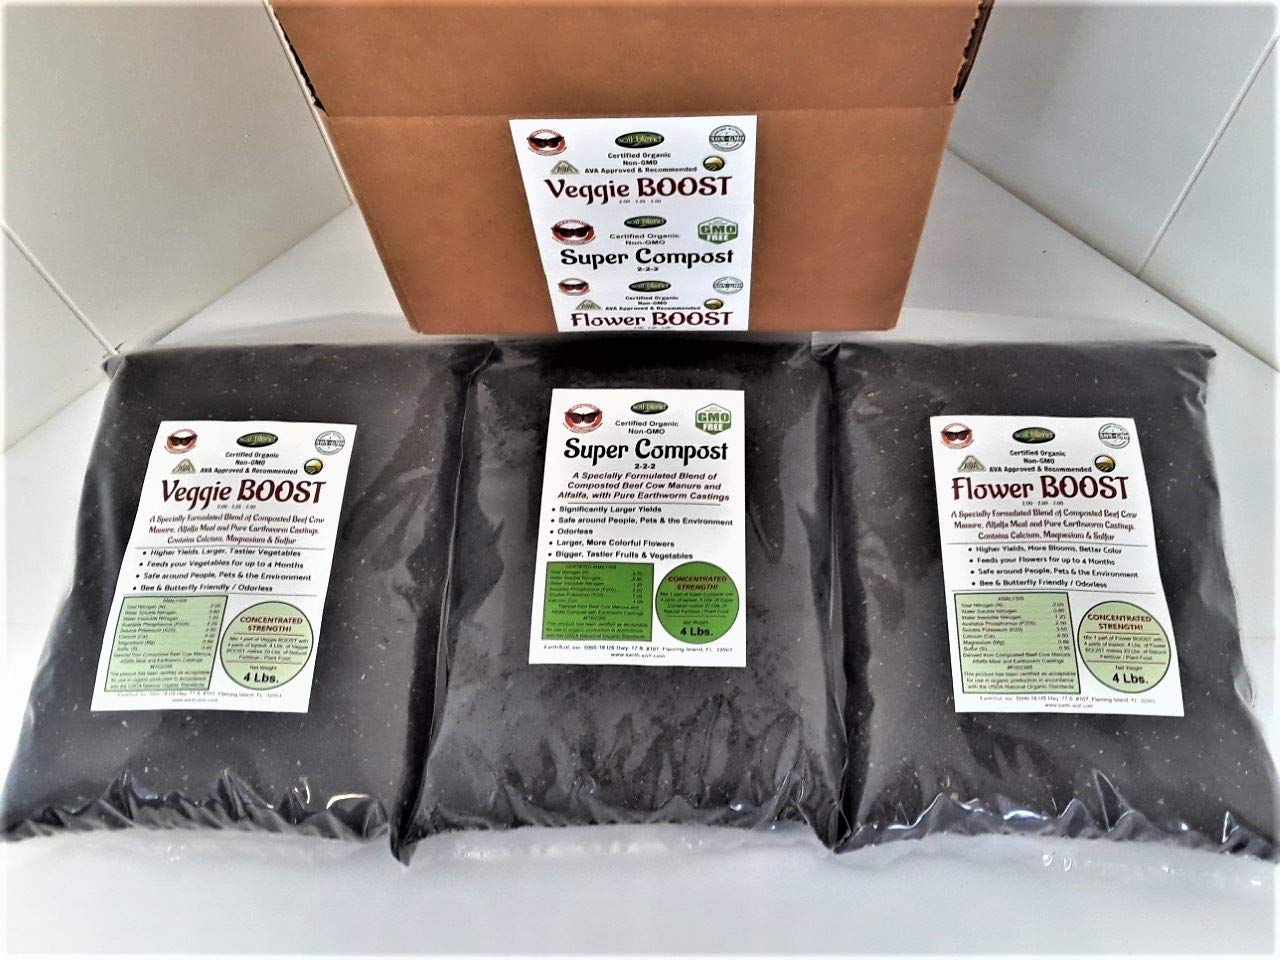 Super Compost Tri-Pack is all you need for Springtime! 1, 4Lb. Bag of Veggie Bloom, 1,4Lb. Bag of Flower Bloom and 1, 4 Lb. Bag of Super Compost. Each bag makes 20 Lbs. of the very best compost!